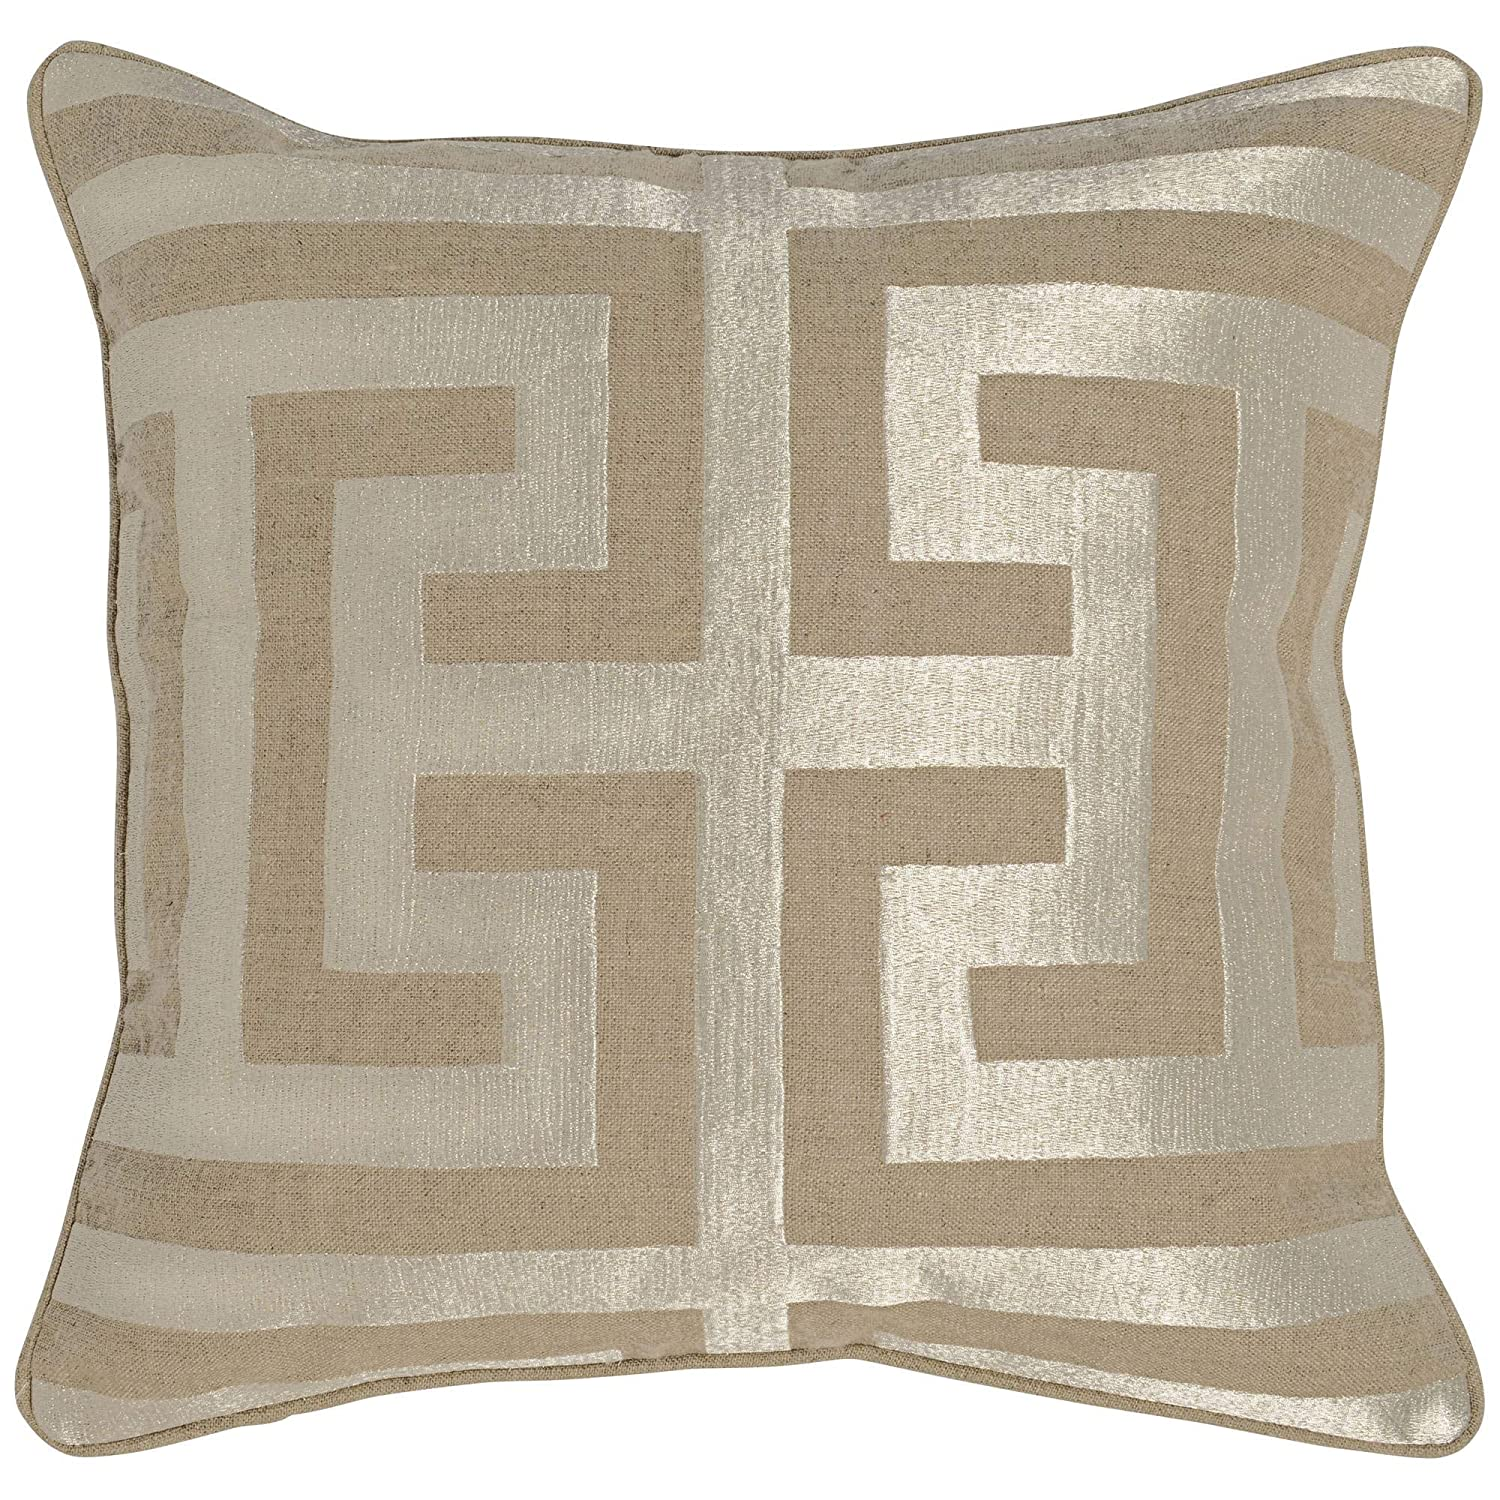 "Kosas Home AV120011Z Carly Linen Feather and Down Filled Pillow, 22"", Pearl/Khaki"